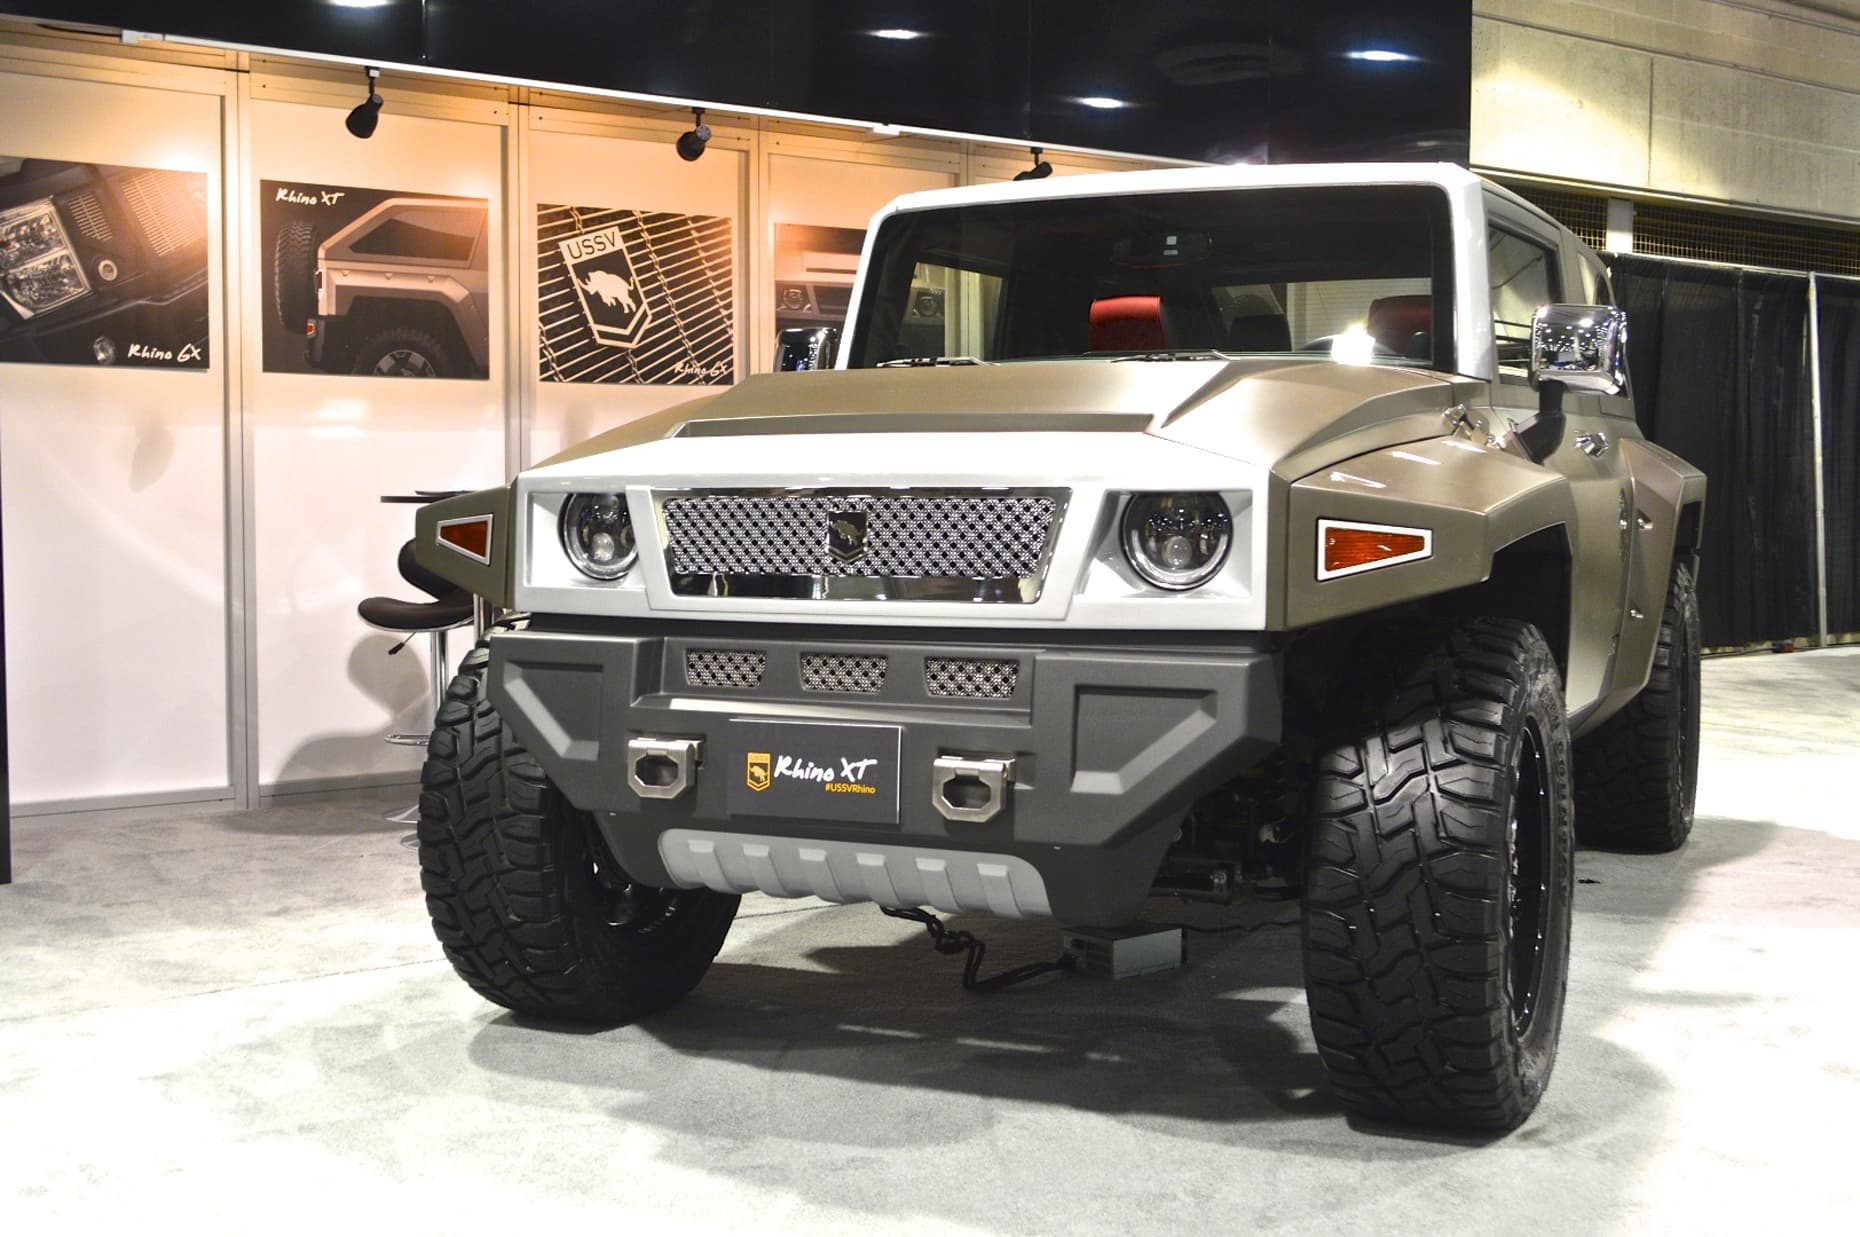 Rhino XT SUV By US Specialty Vehicles (10)